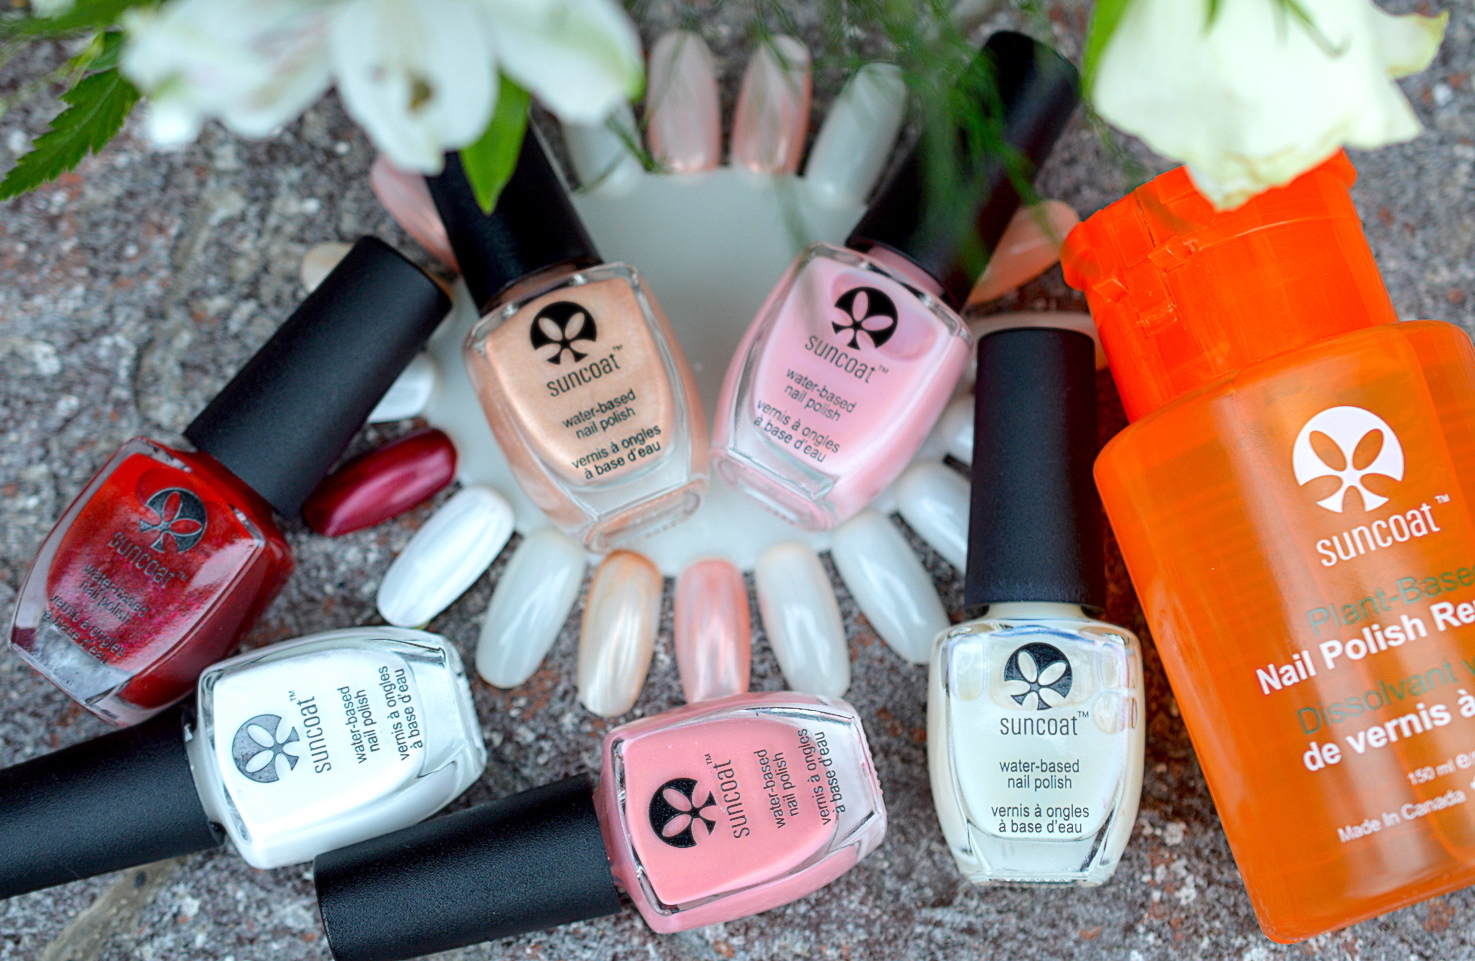 SUNCOAT Water-Based Nail Polish Review